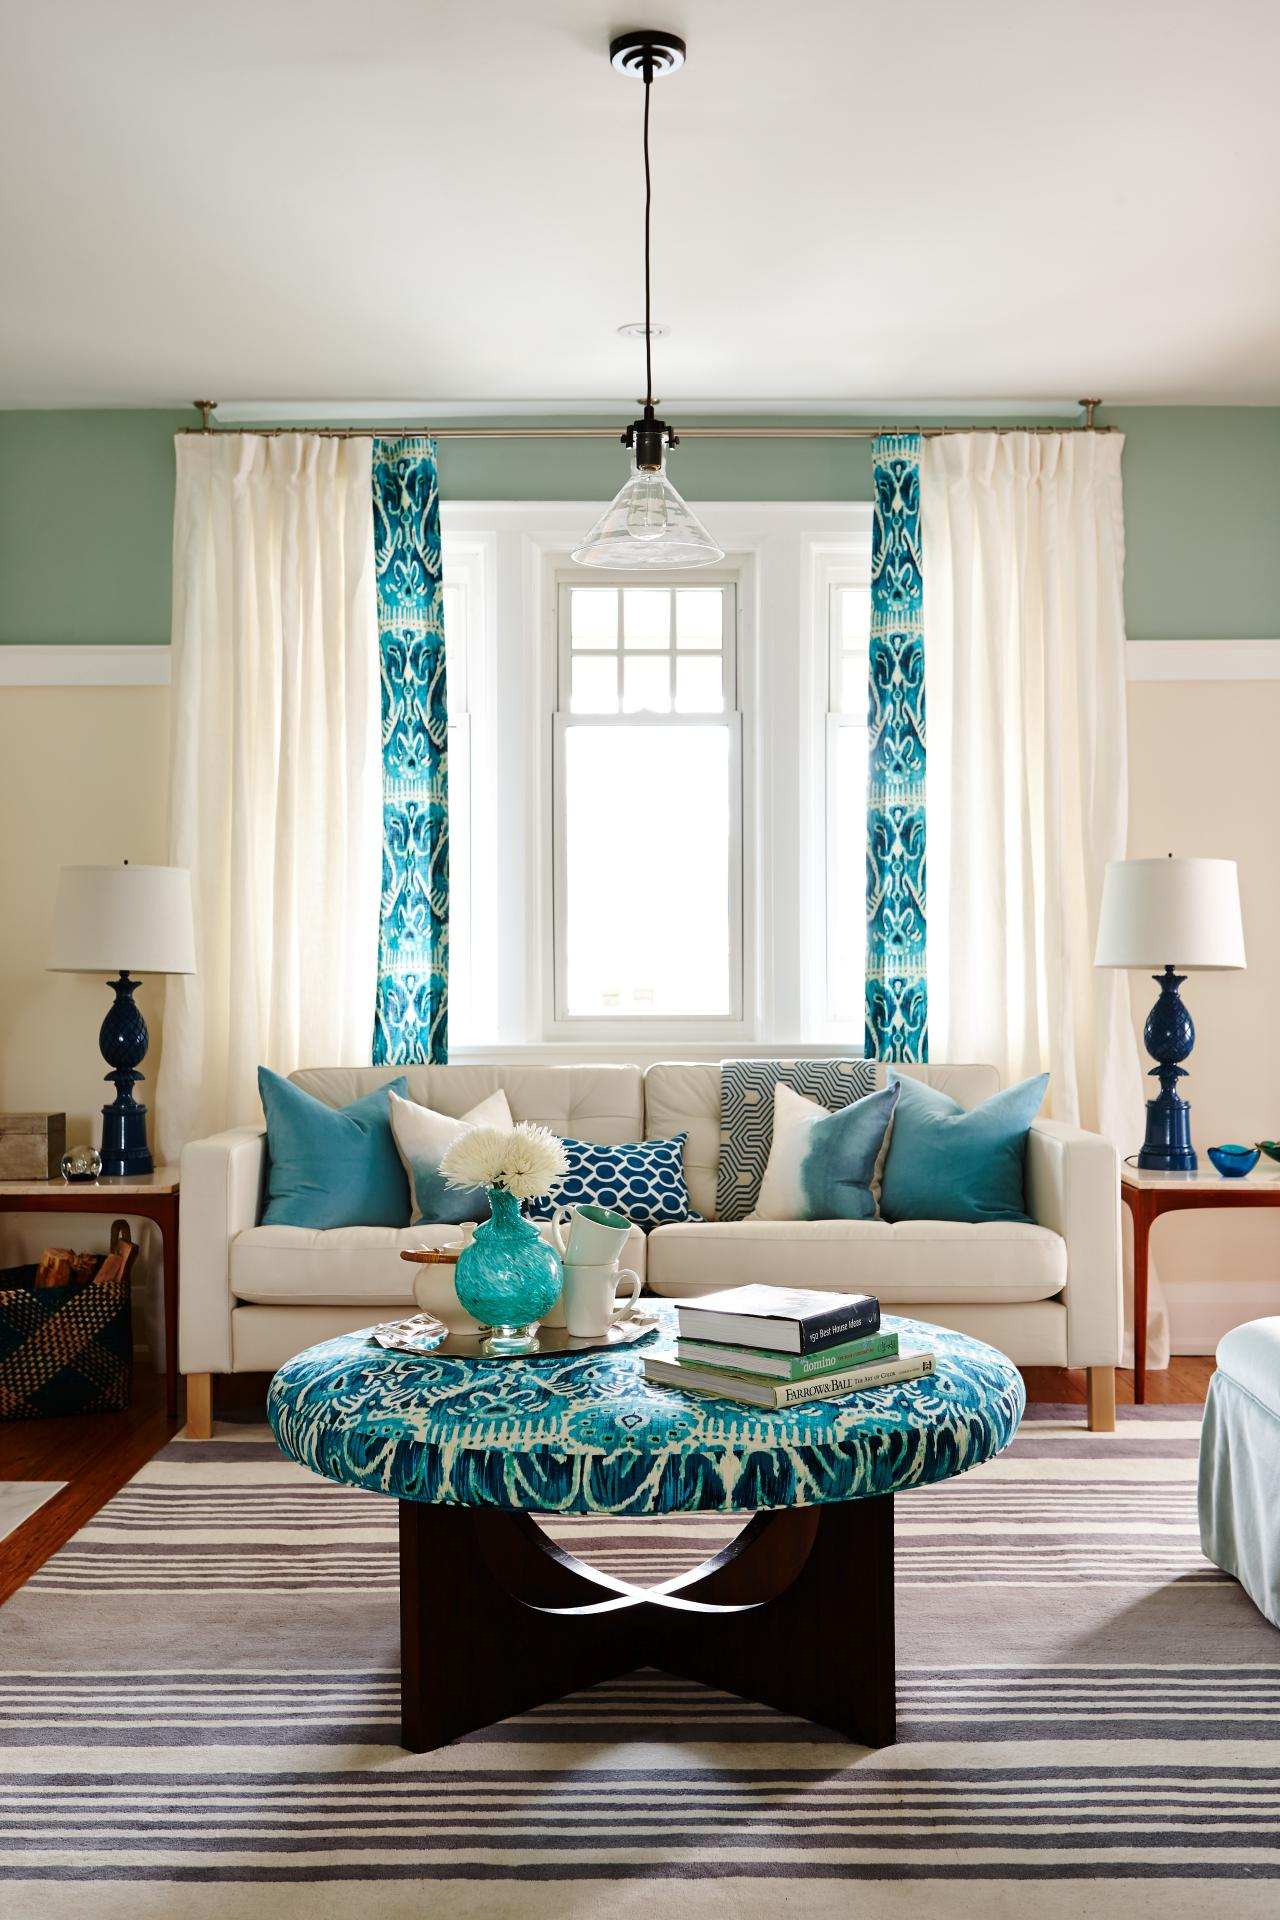 Living Room With Turquoise Accents 10 Ideas For How To Decorate